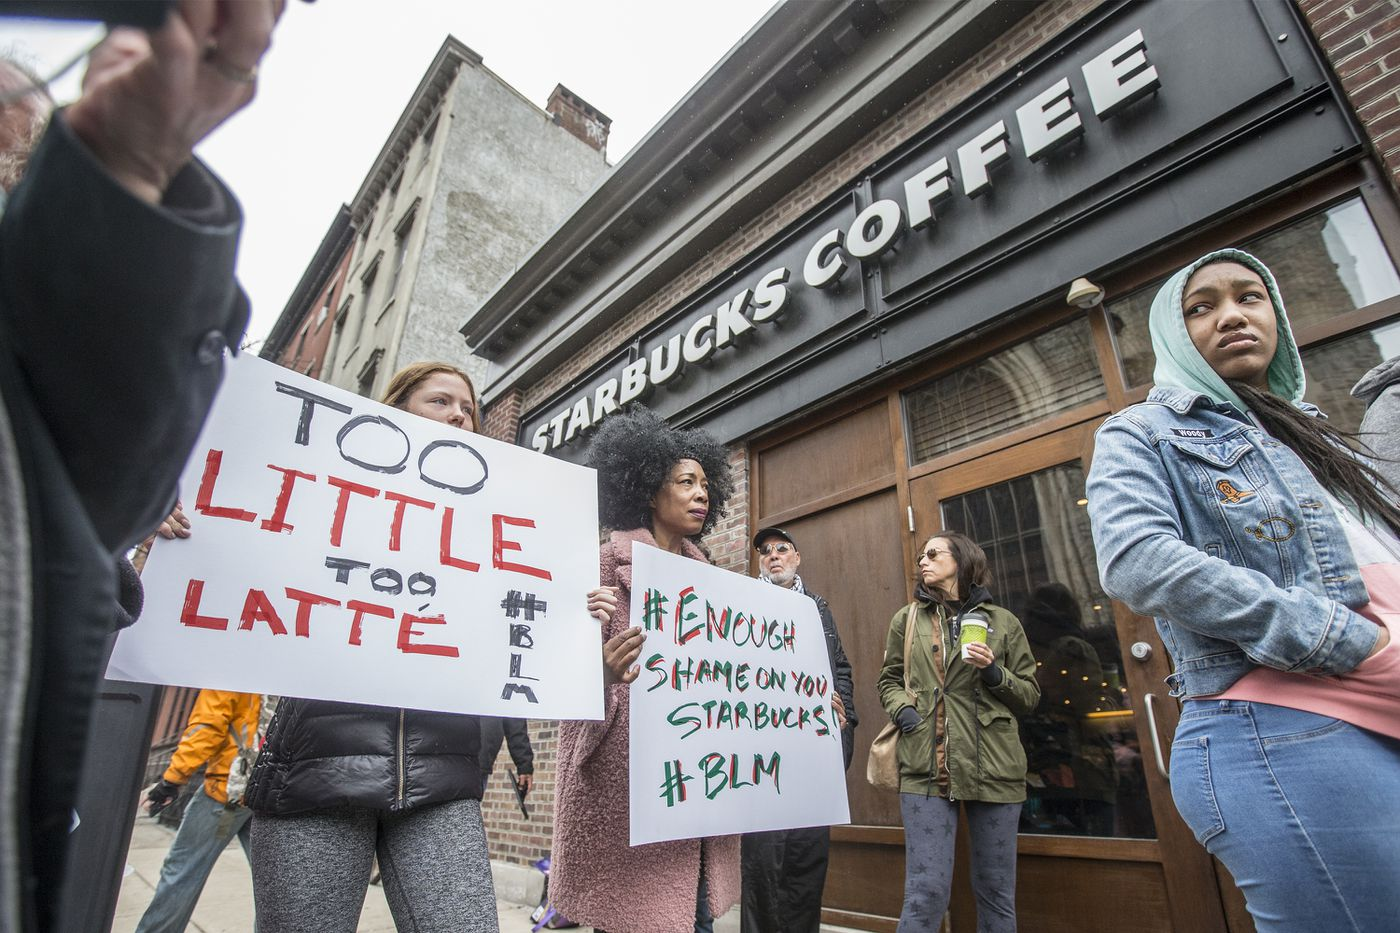 Review of Starbucks arrests shows racial bias by Philly cops, commission finds